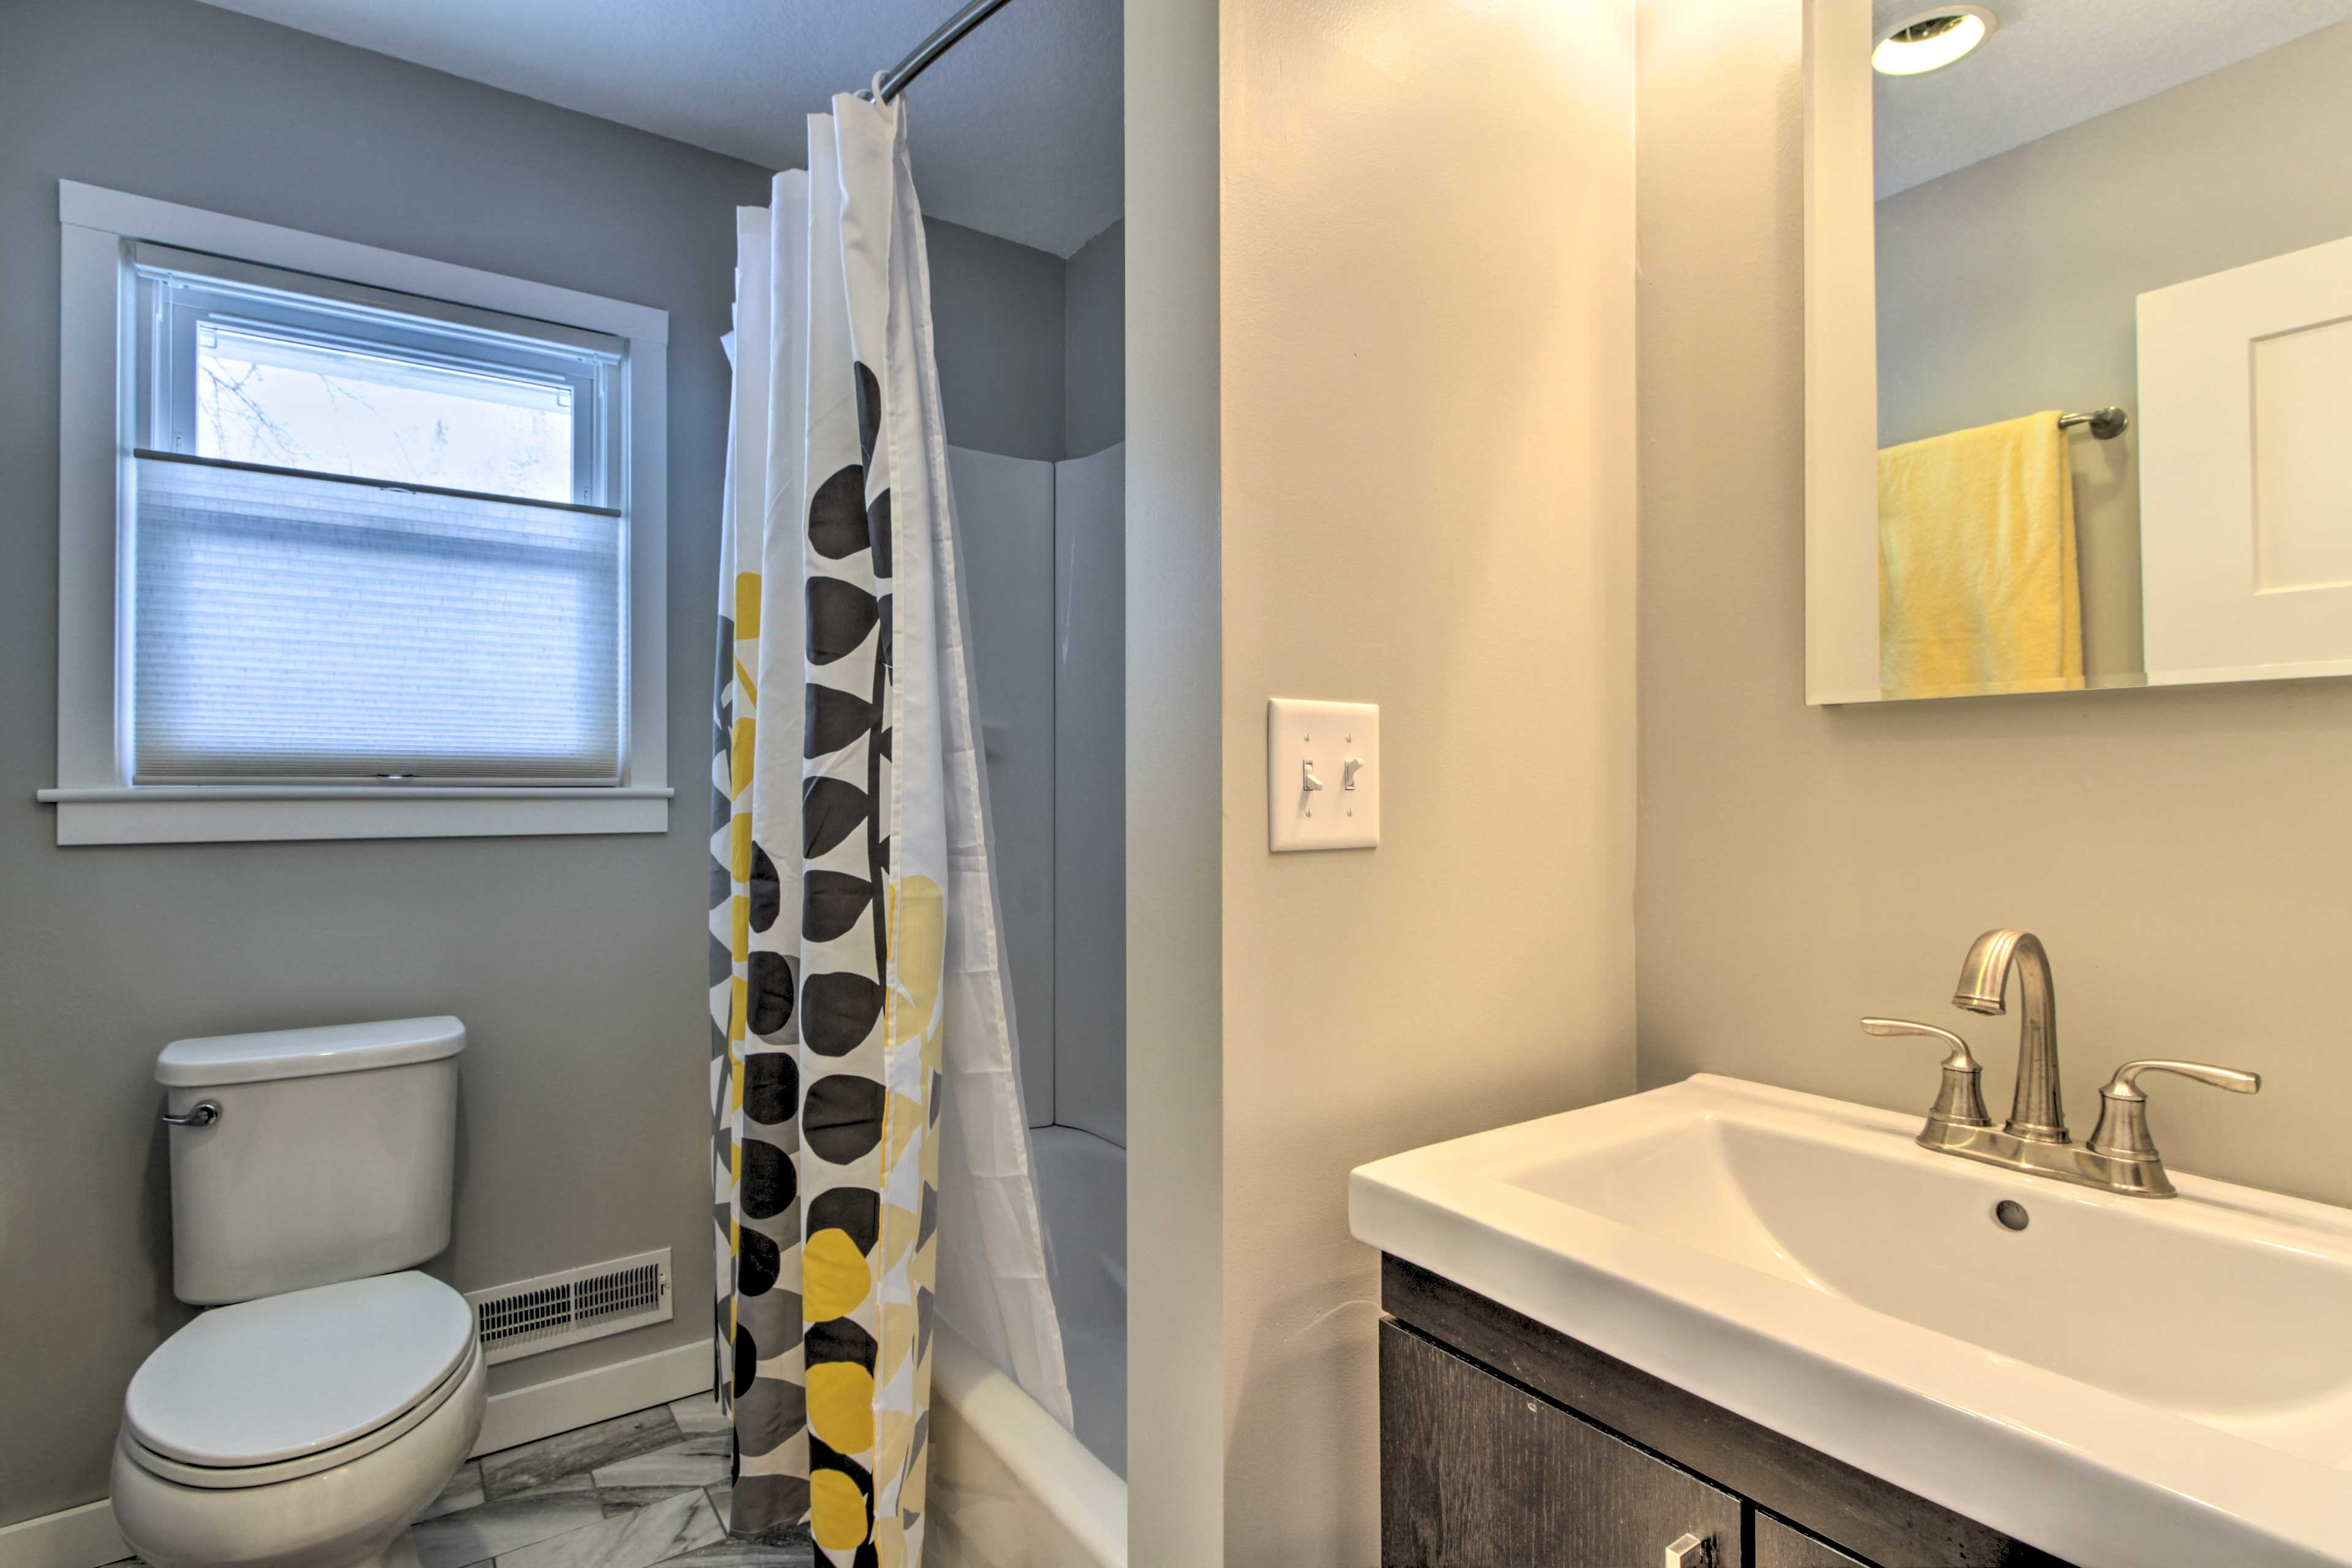 Rinse off with the shower/tub combo.